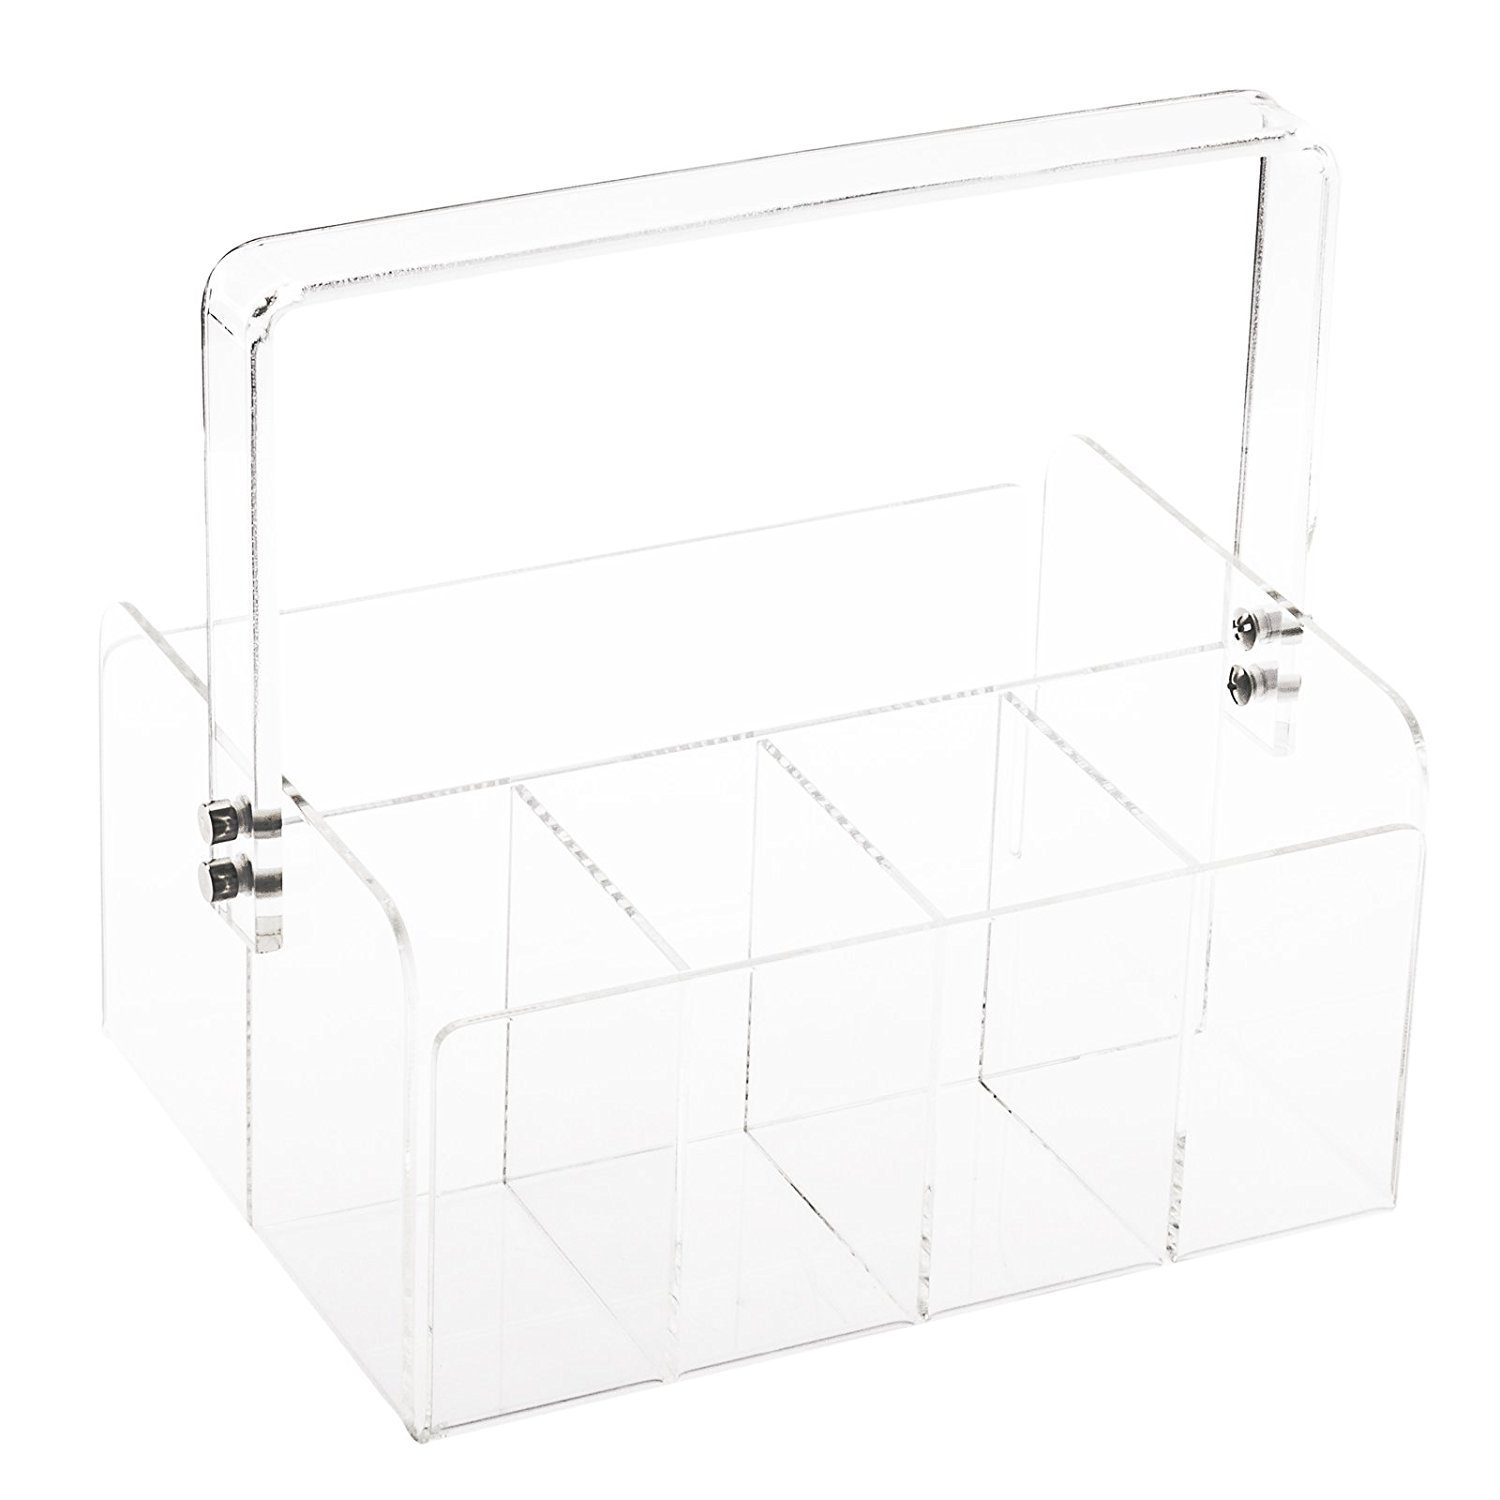 clear flatware caddy - third trimester to do list